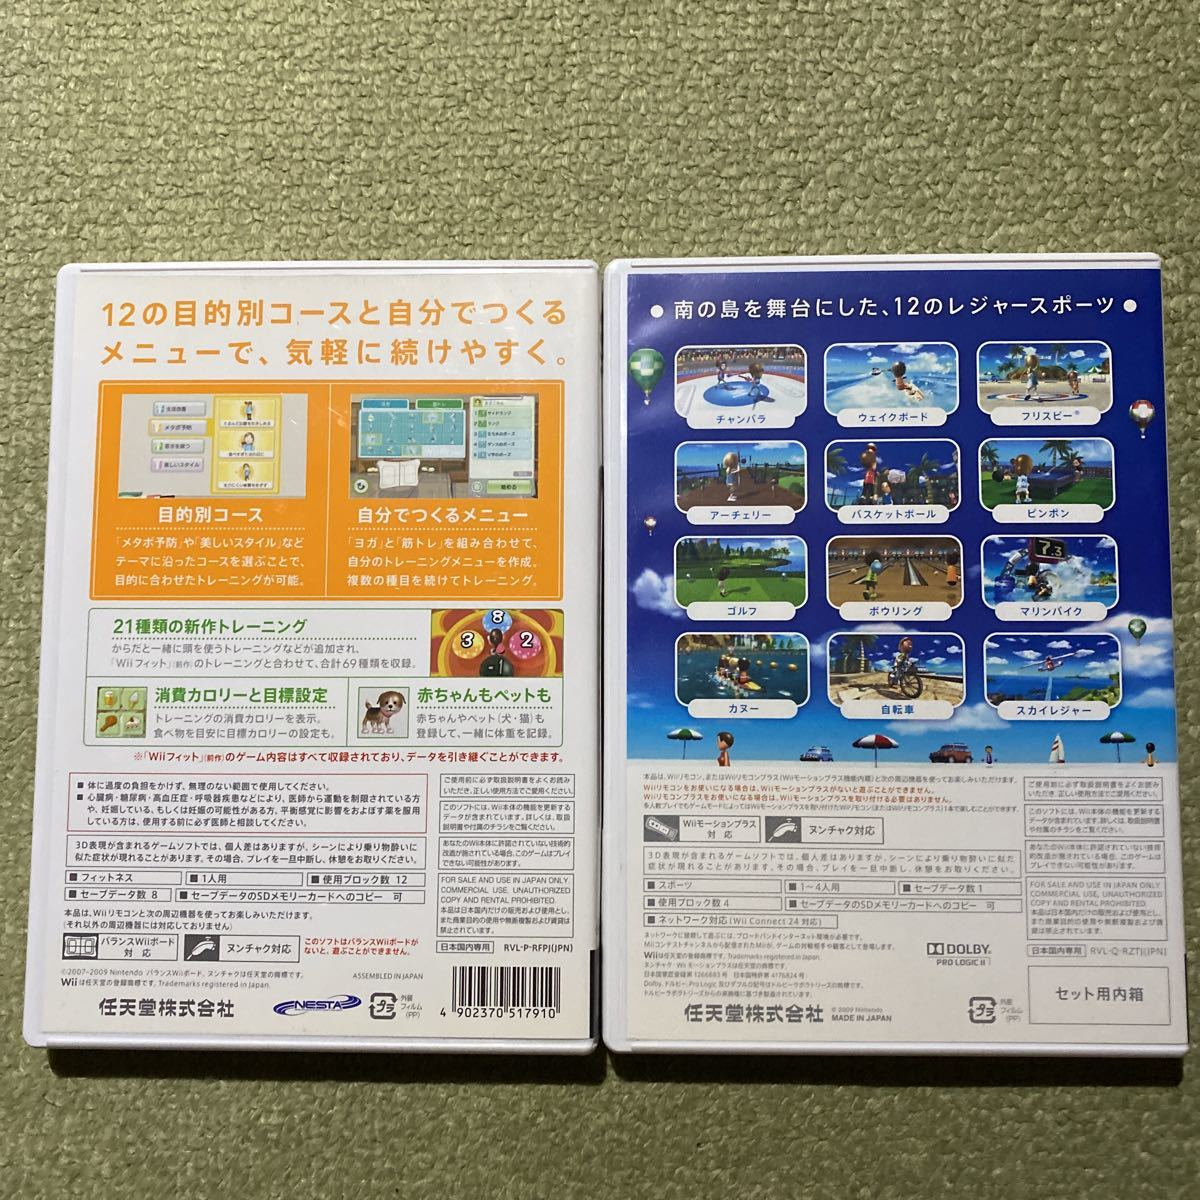 Wii Fit Plus Wiiスポーツリゾート 2本セット